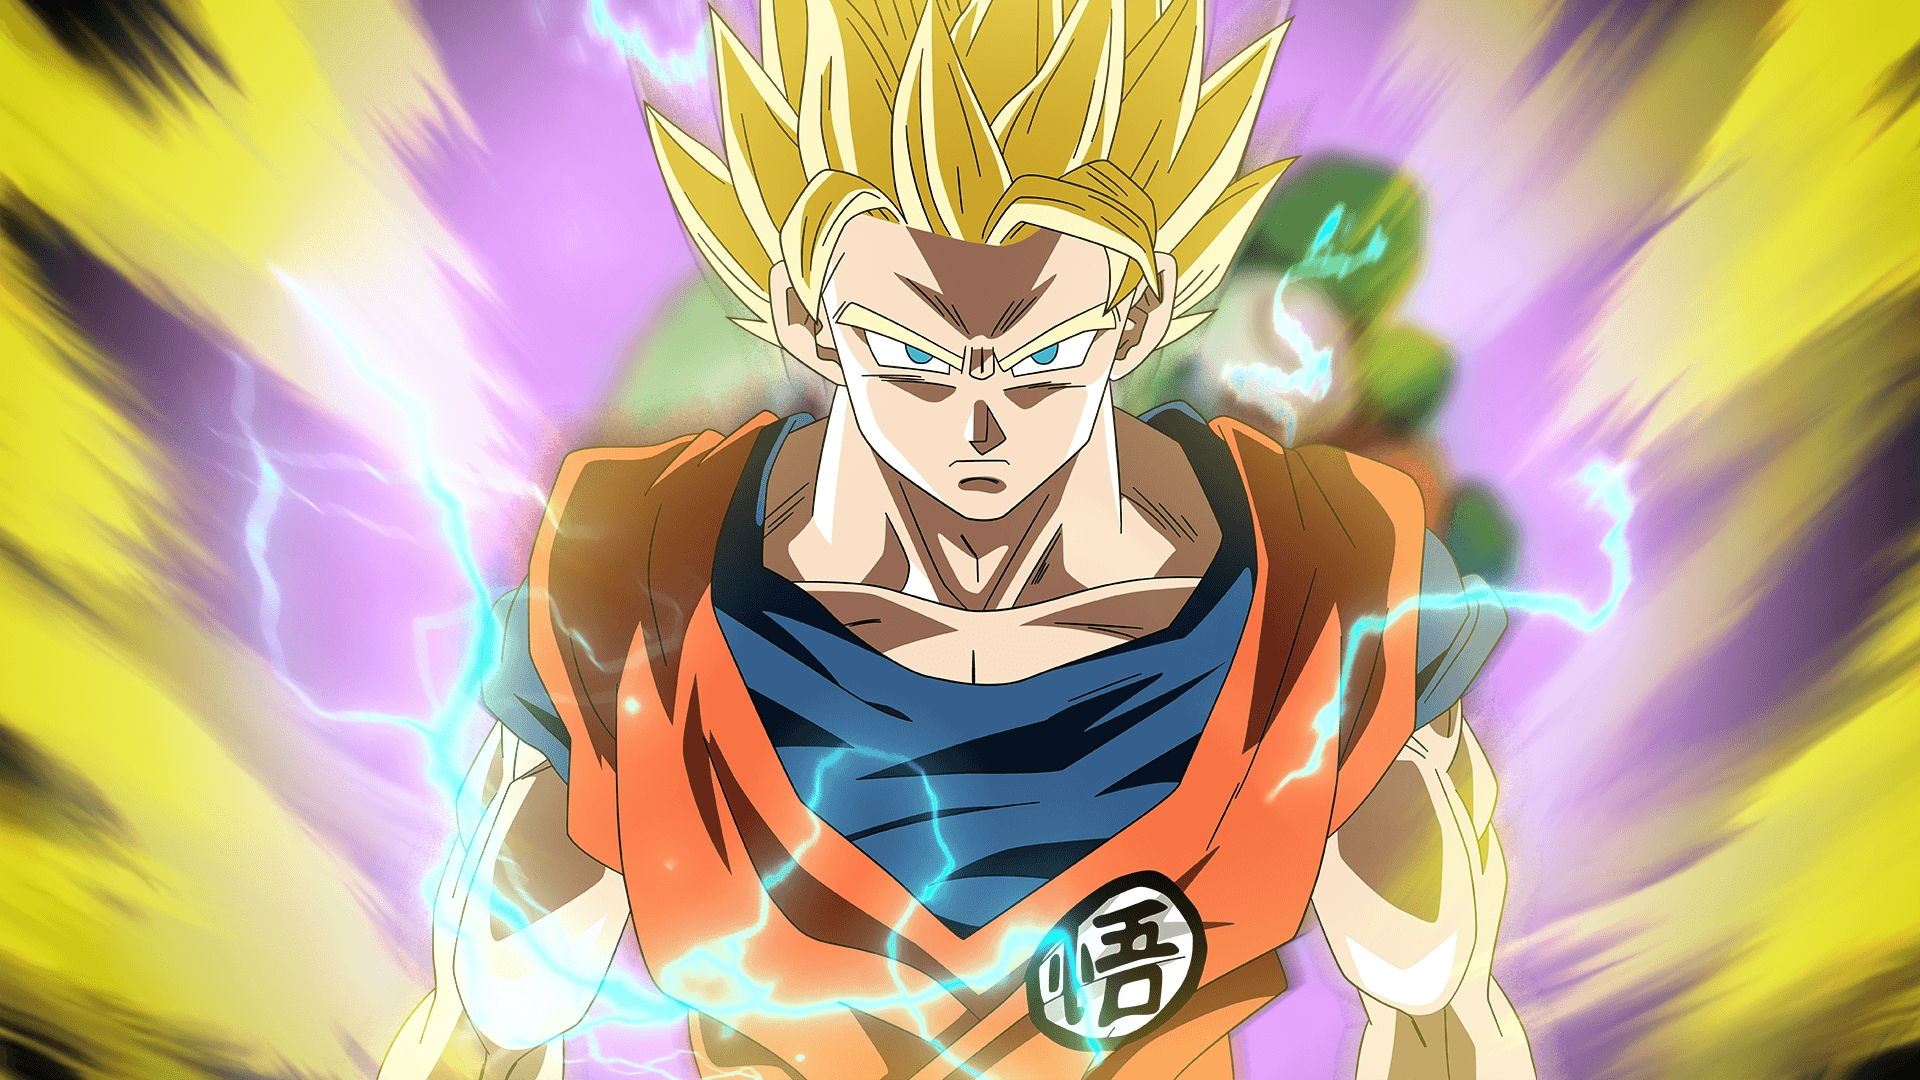 goku super saiyan god wallpapers - wallpaper cave